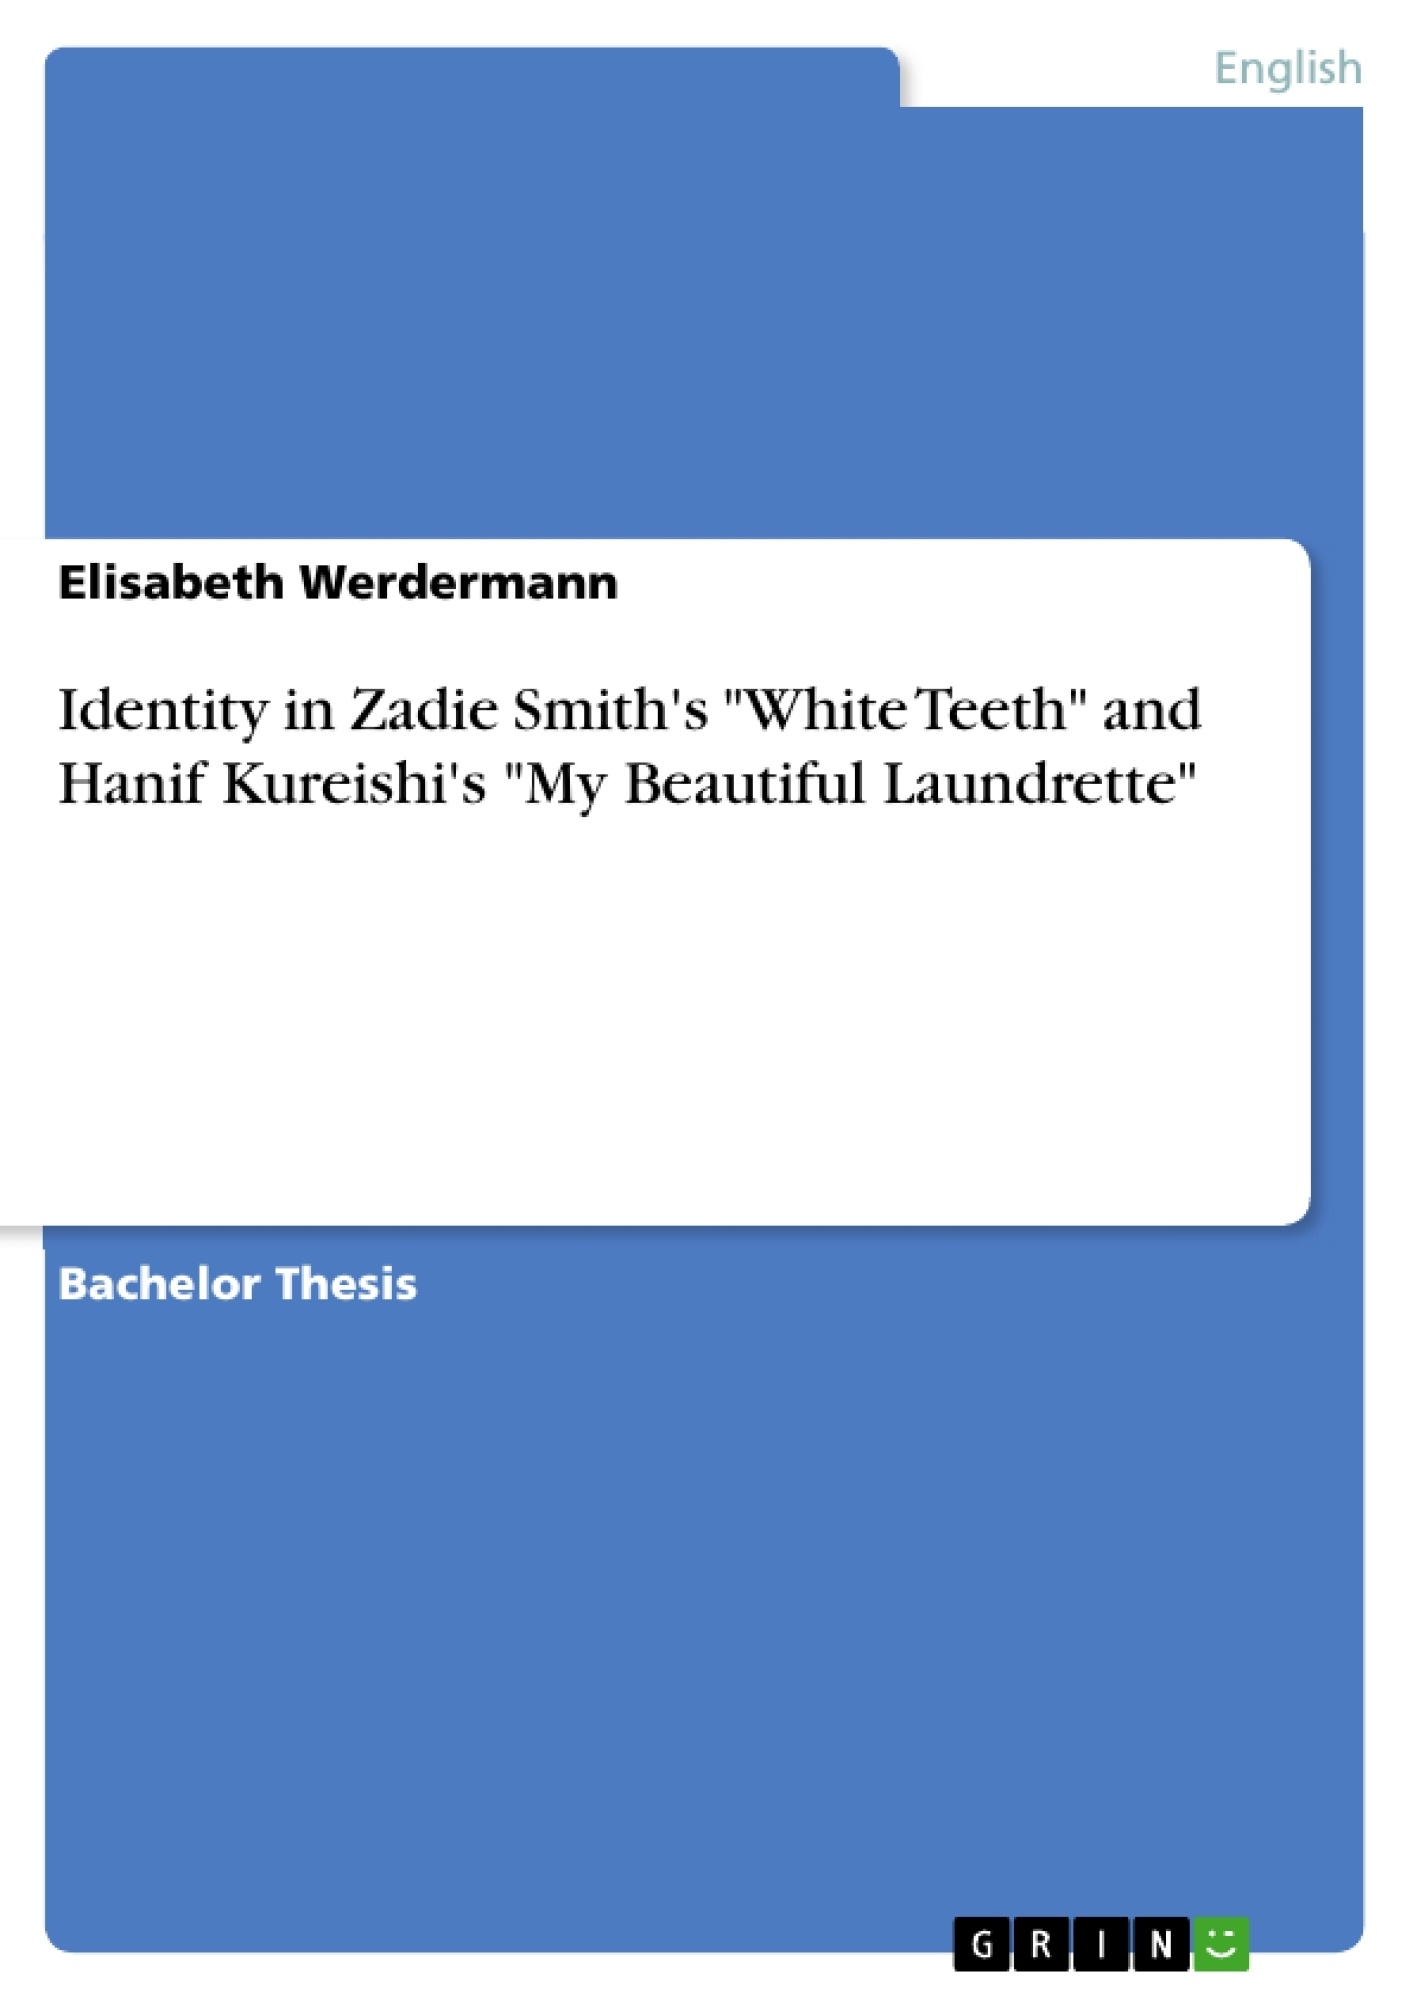 """Title: Identity in Zadie Smith's """"White Teeth"""" and Hanif Kureishi's """"My Beautiful Laundrette"""""""